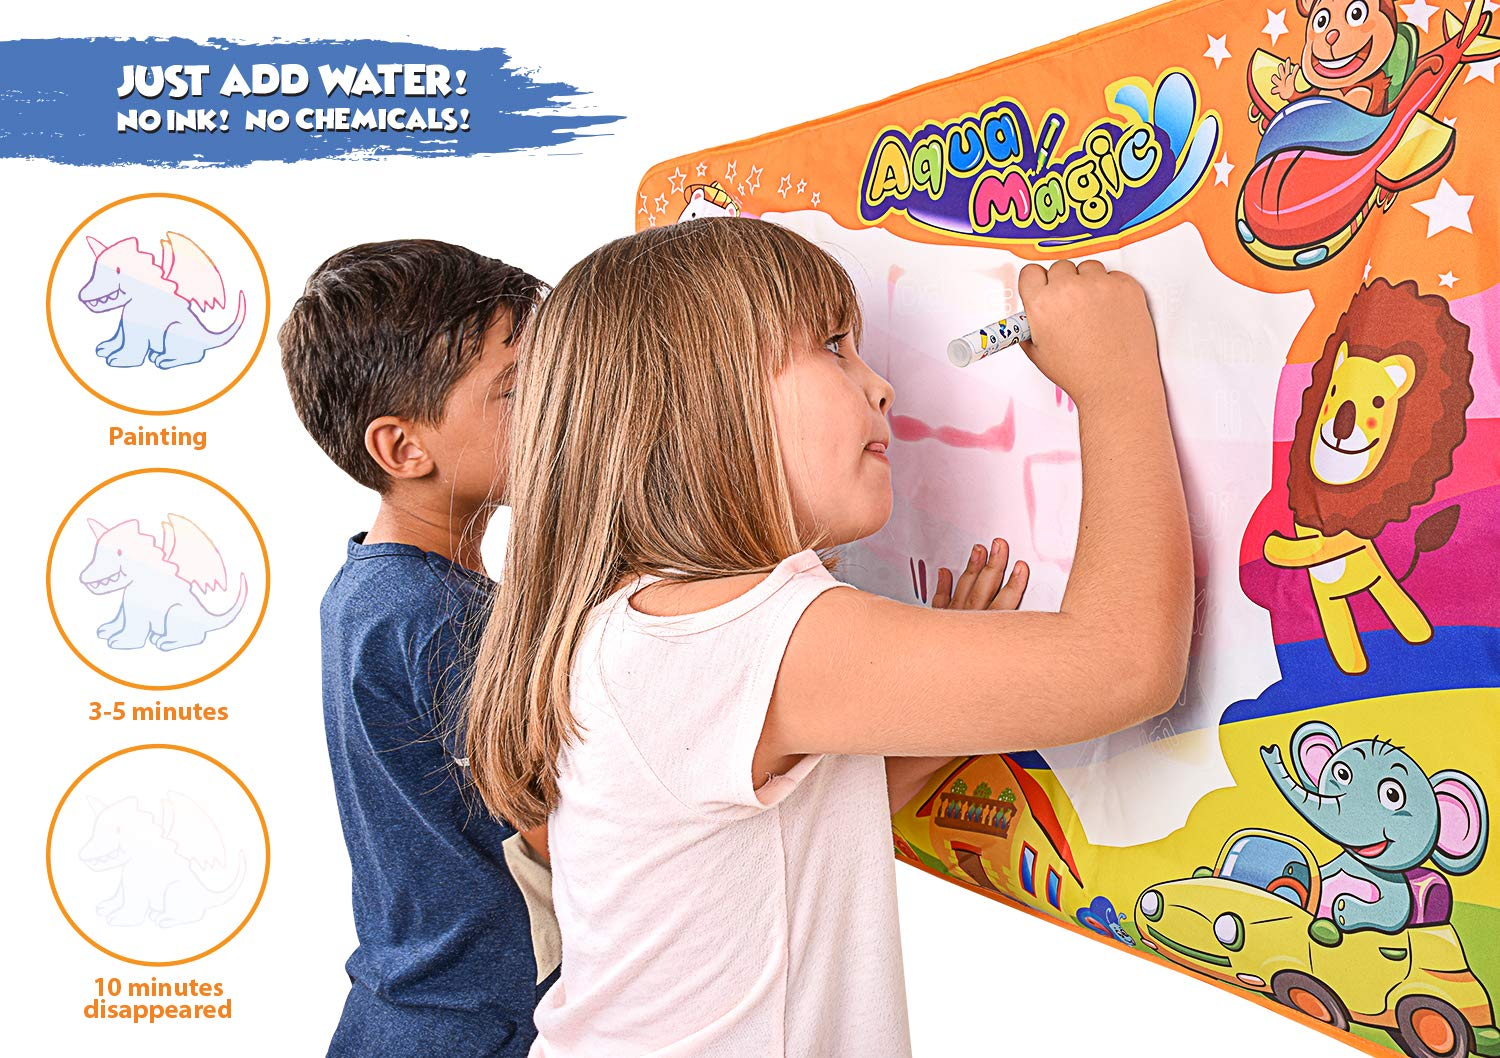 Educational Painting | Magic Aqua Doodling Board w// 2 Magic Pens /& 1 Brush for Boys /& Girls 34.5/'/' x 22.5/'/' Homey homes inc. Large Water Drawing Mat for Kids Doodle /& Writing Mat Great Gift Idea Age 2 and up